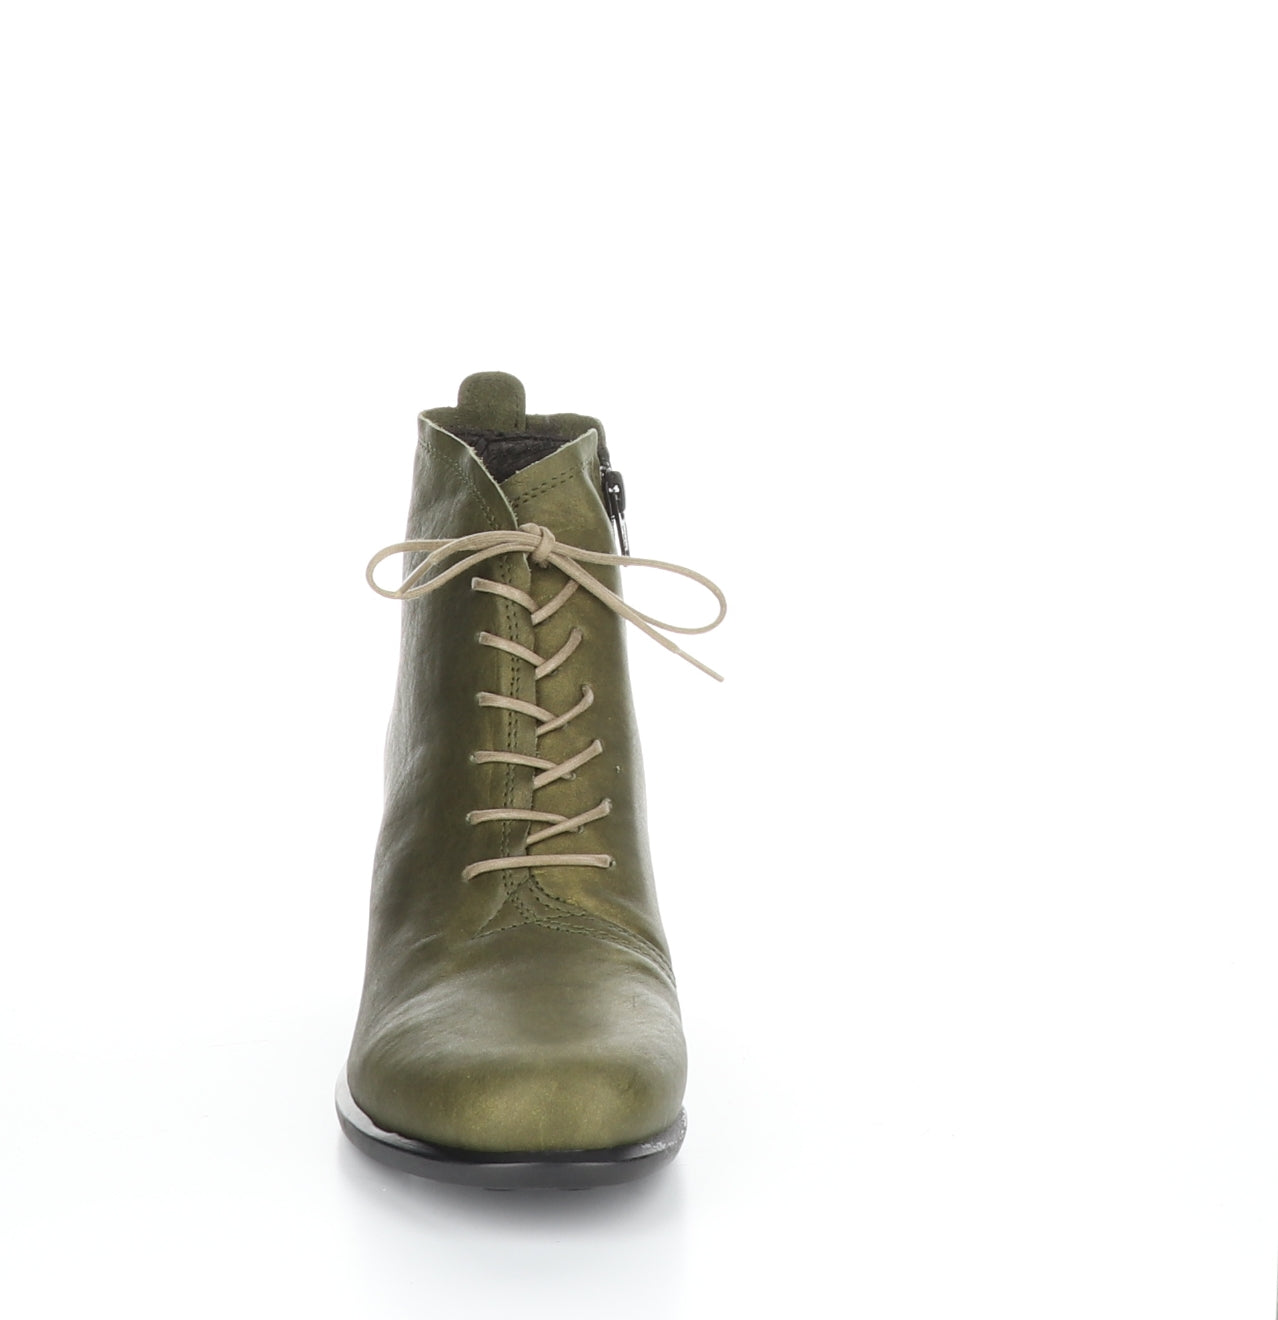 Fly London Inet in olive boot available at Shoe Muse